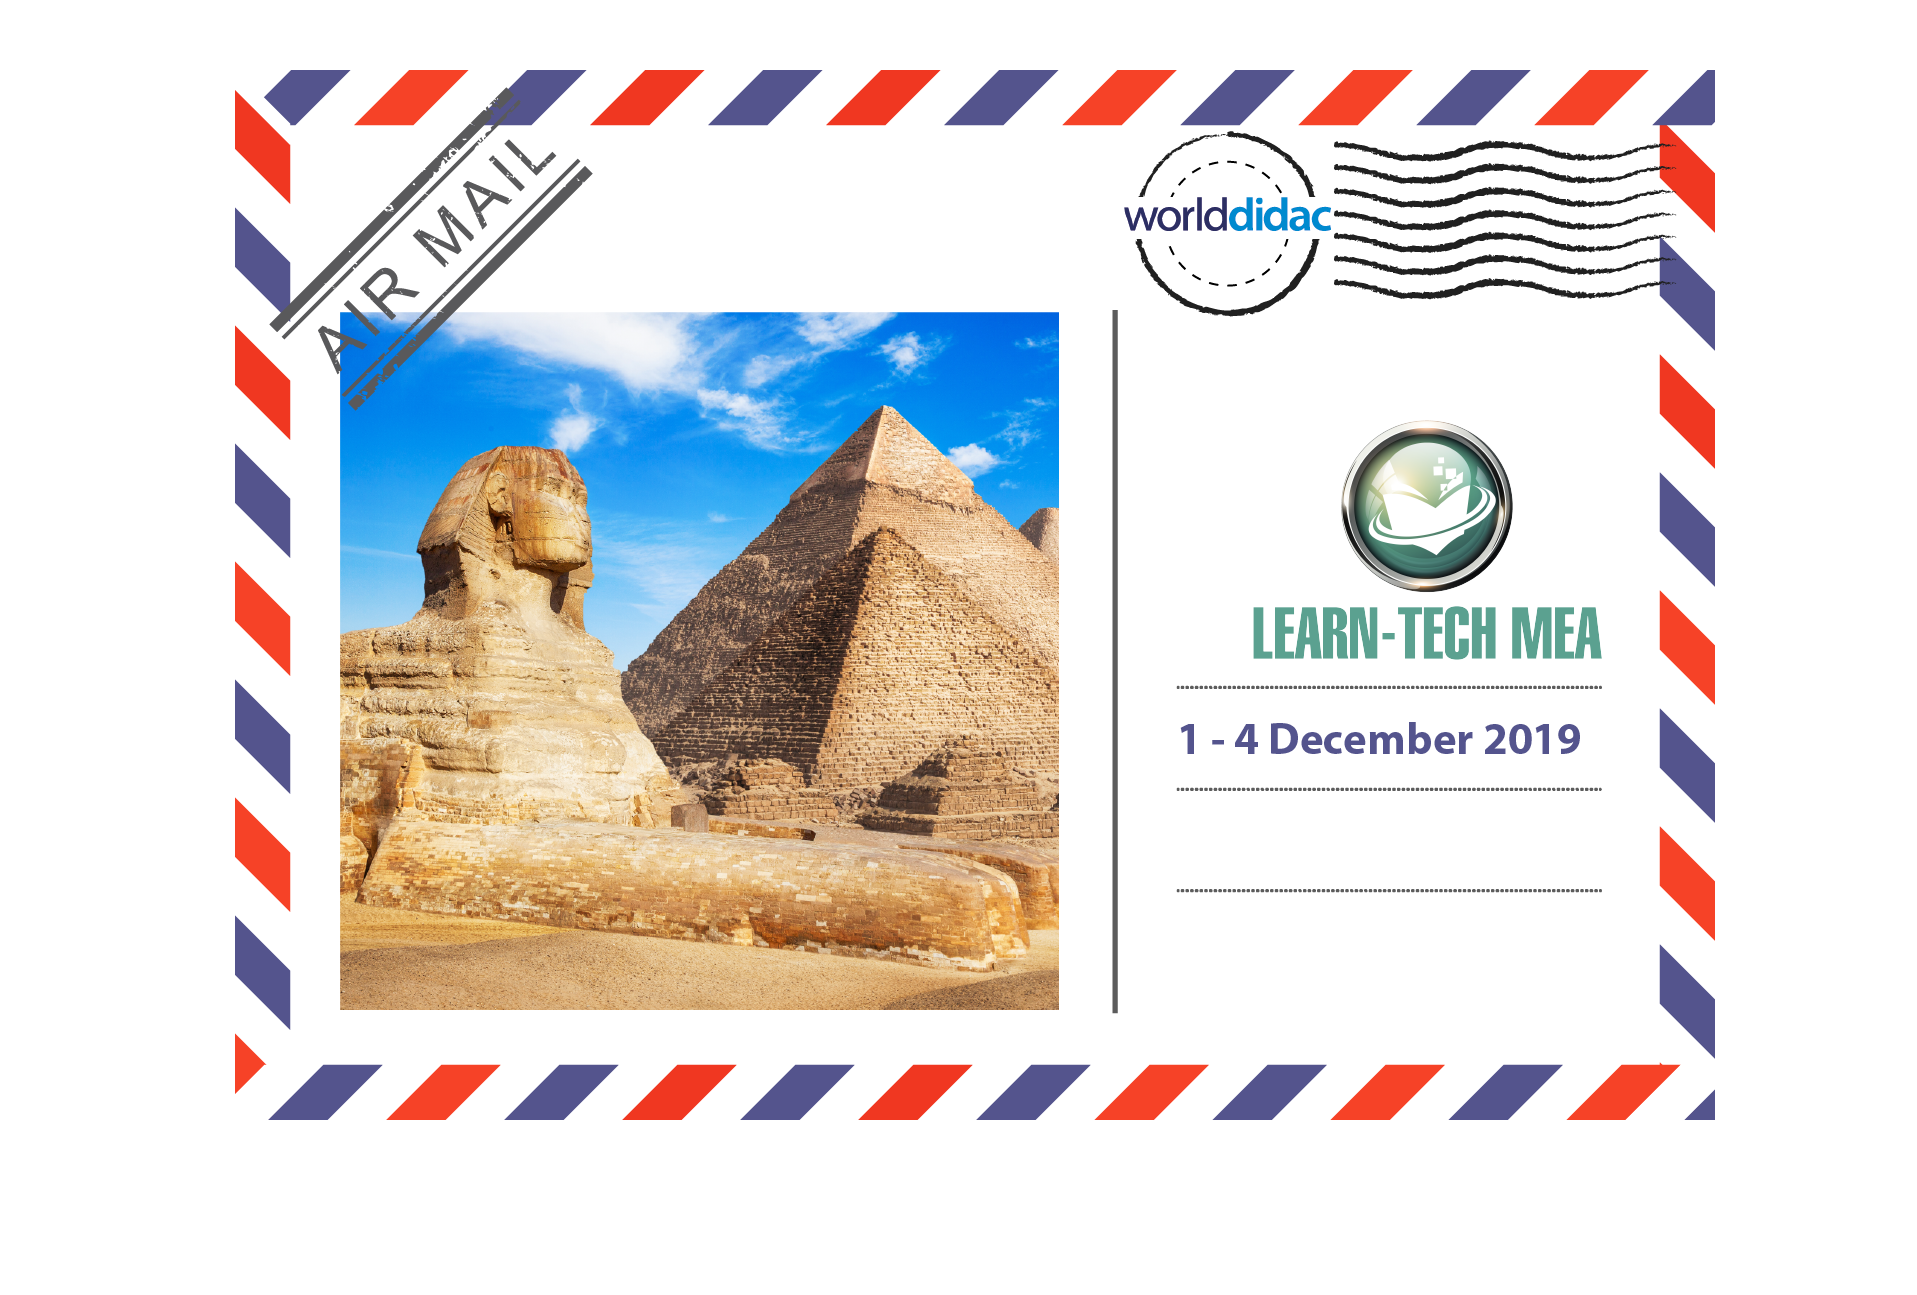 Air Mail Learn Tech MEA -Logo and Picutres of Pyramids